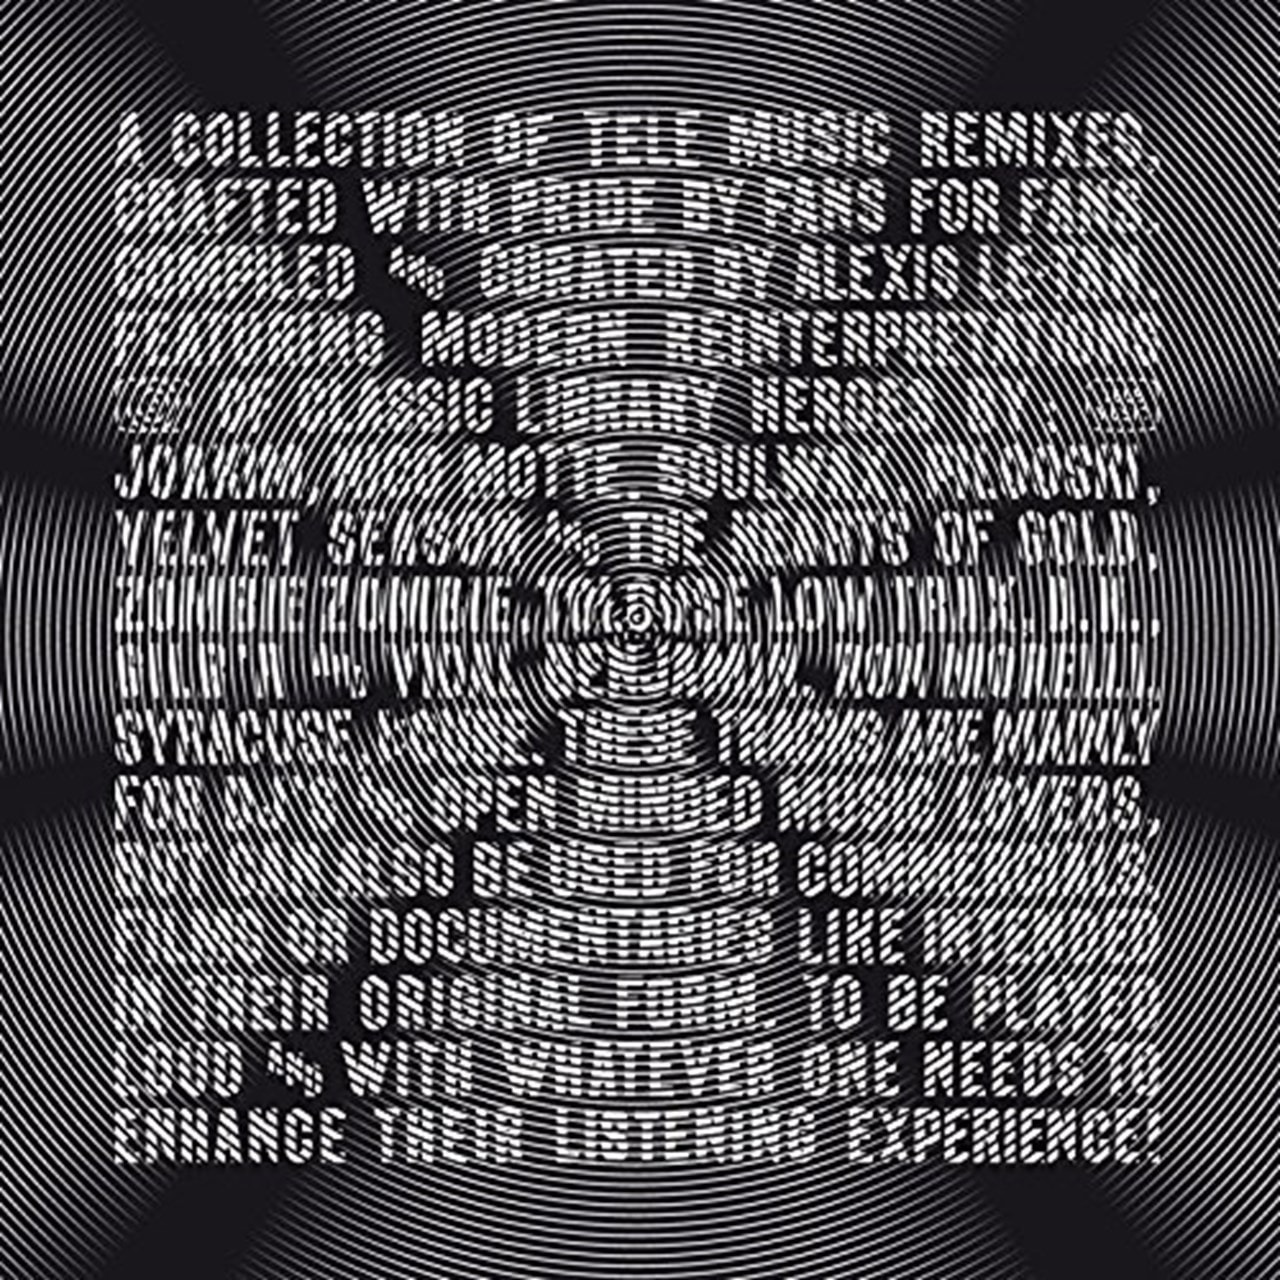 A Collection of Tele Music Remixes - Volume 1 - 1